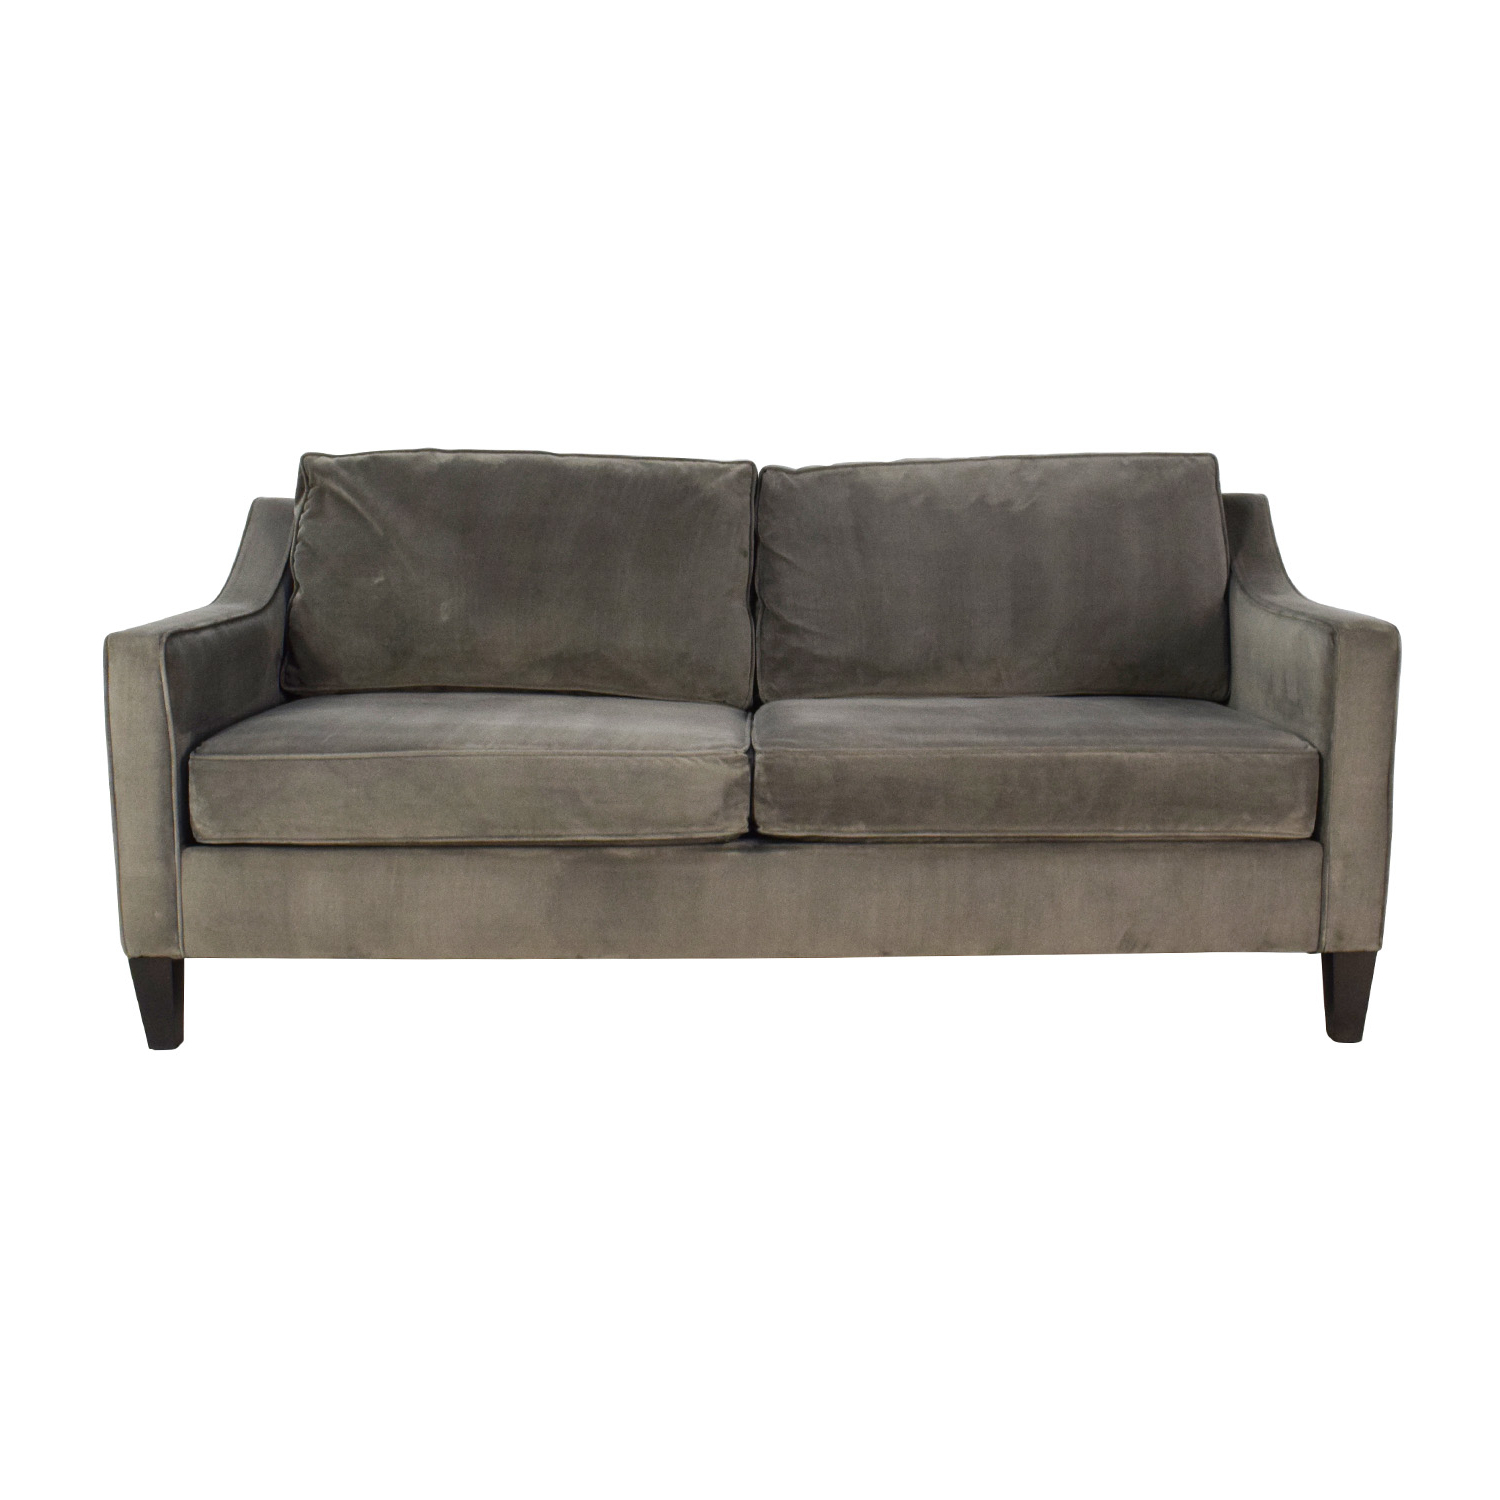 [%56% Off – West Elm West Elm Paidge Sofa / Sofas With Well Known Elm Sofa Chairs|Elm Sofa Chairs Inside Widely Used 56% Off – West Elm West Elm Paidge Sofa / Sofas|2018 Elm Sofa Chairs Pertaining To 56% Off – West Elm West Elm Paidge Sofa / Sofas|Latest 56% Off – West Elm West Elm Paidge Sofa / Sofas Inside Elm Sofa Chairs%] (View 1 of 20)